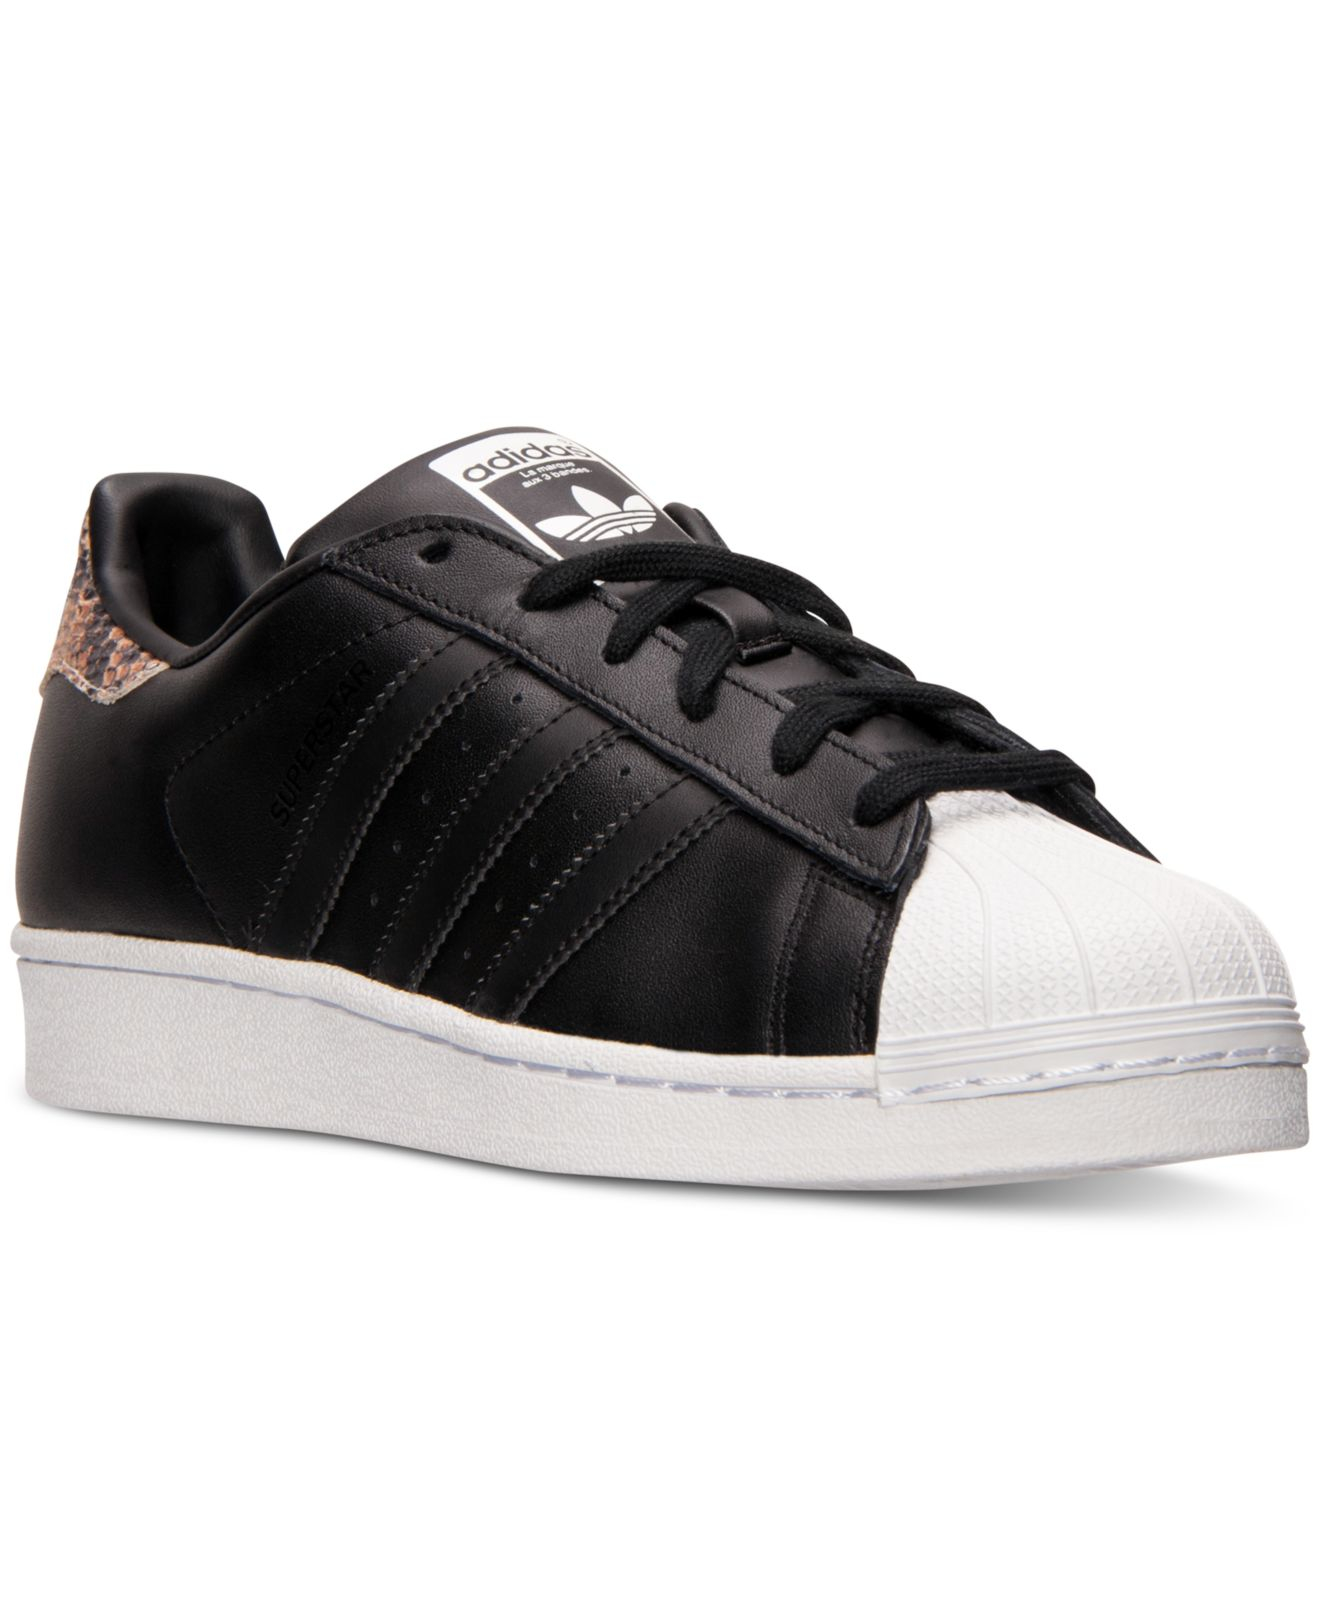 adidas superstar 2 finish line sold. adidas superstar 2 finish line